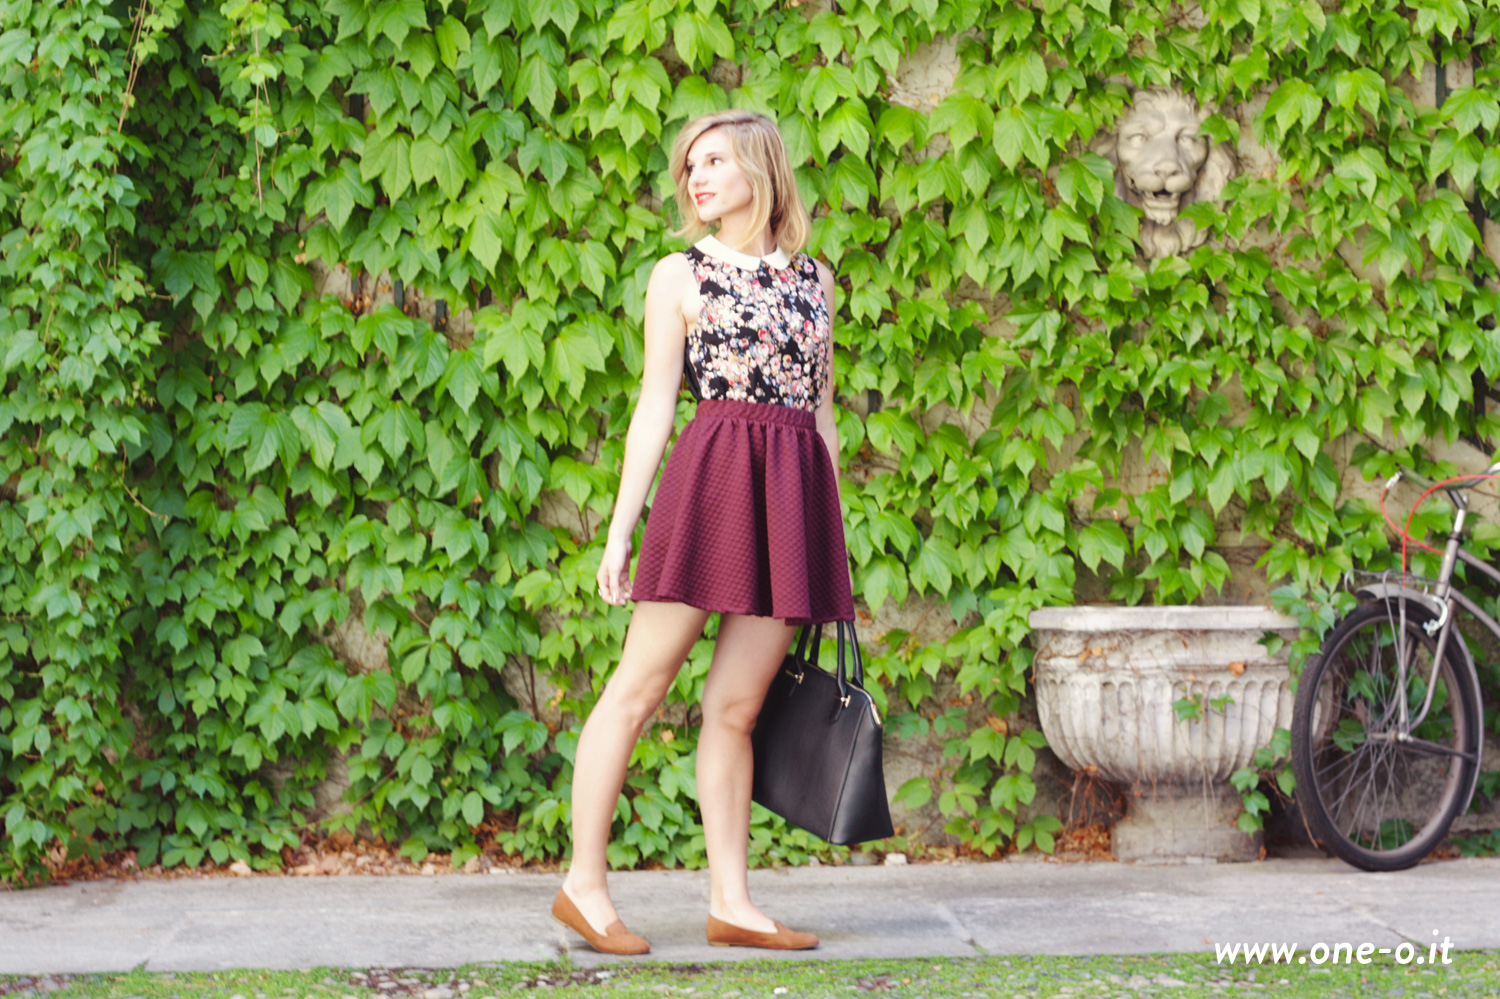 Steal_her_Style_Taylor_06   #fashion #style #fashionista #stealherstyle #Taylor #TaylorSwift #dress #dressup #inspiration #moodboard